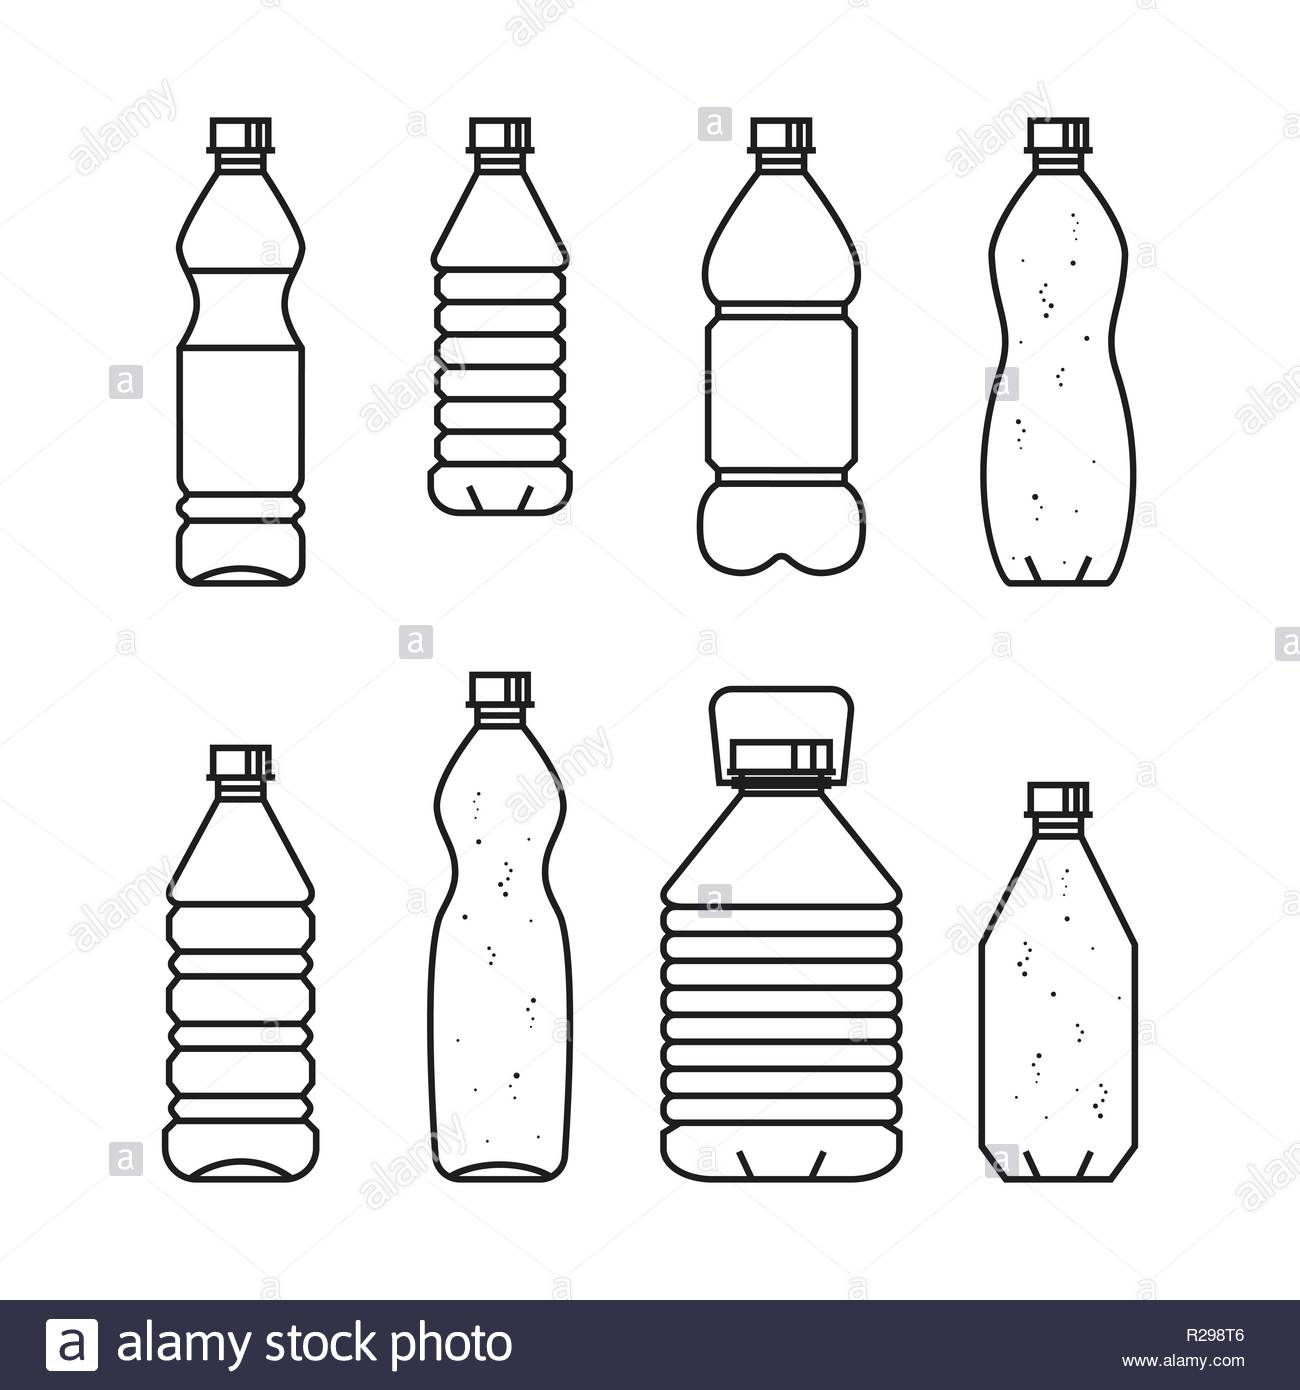 Pure drinking water Line vector illustration of set of plastic